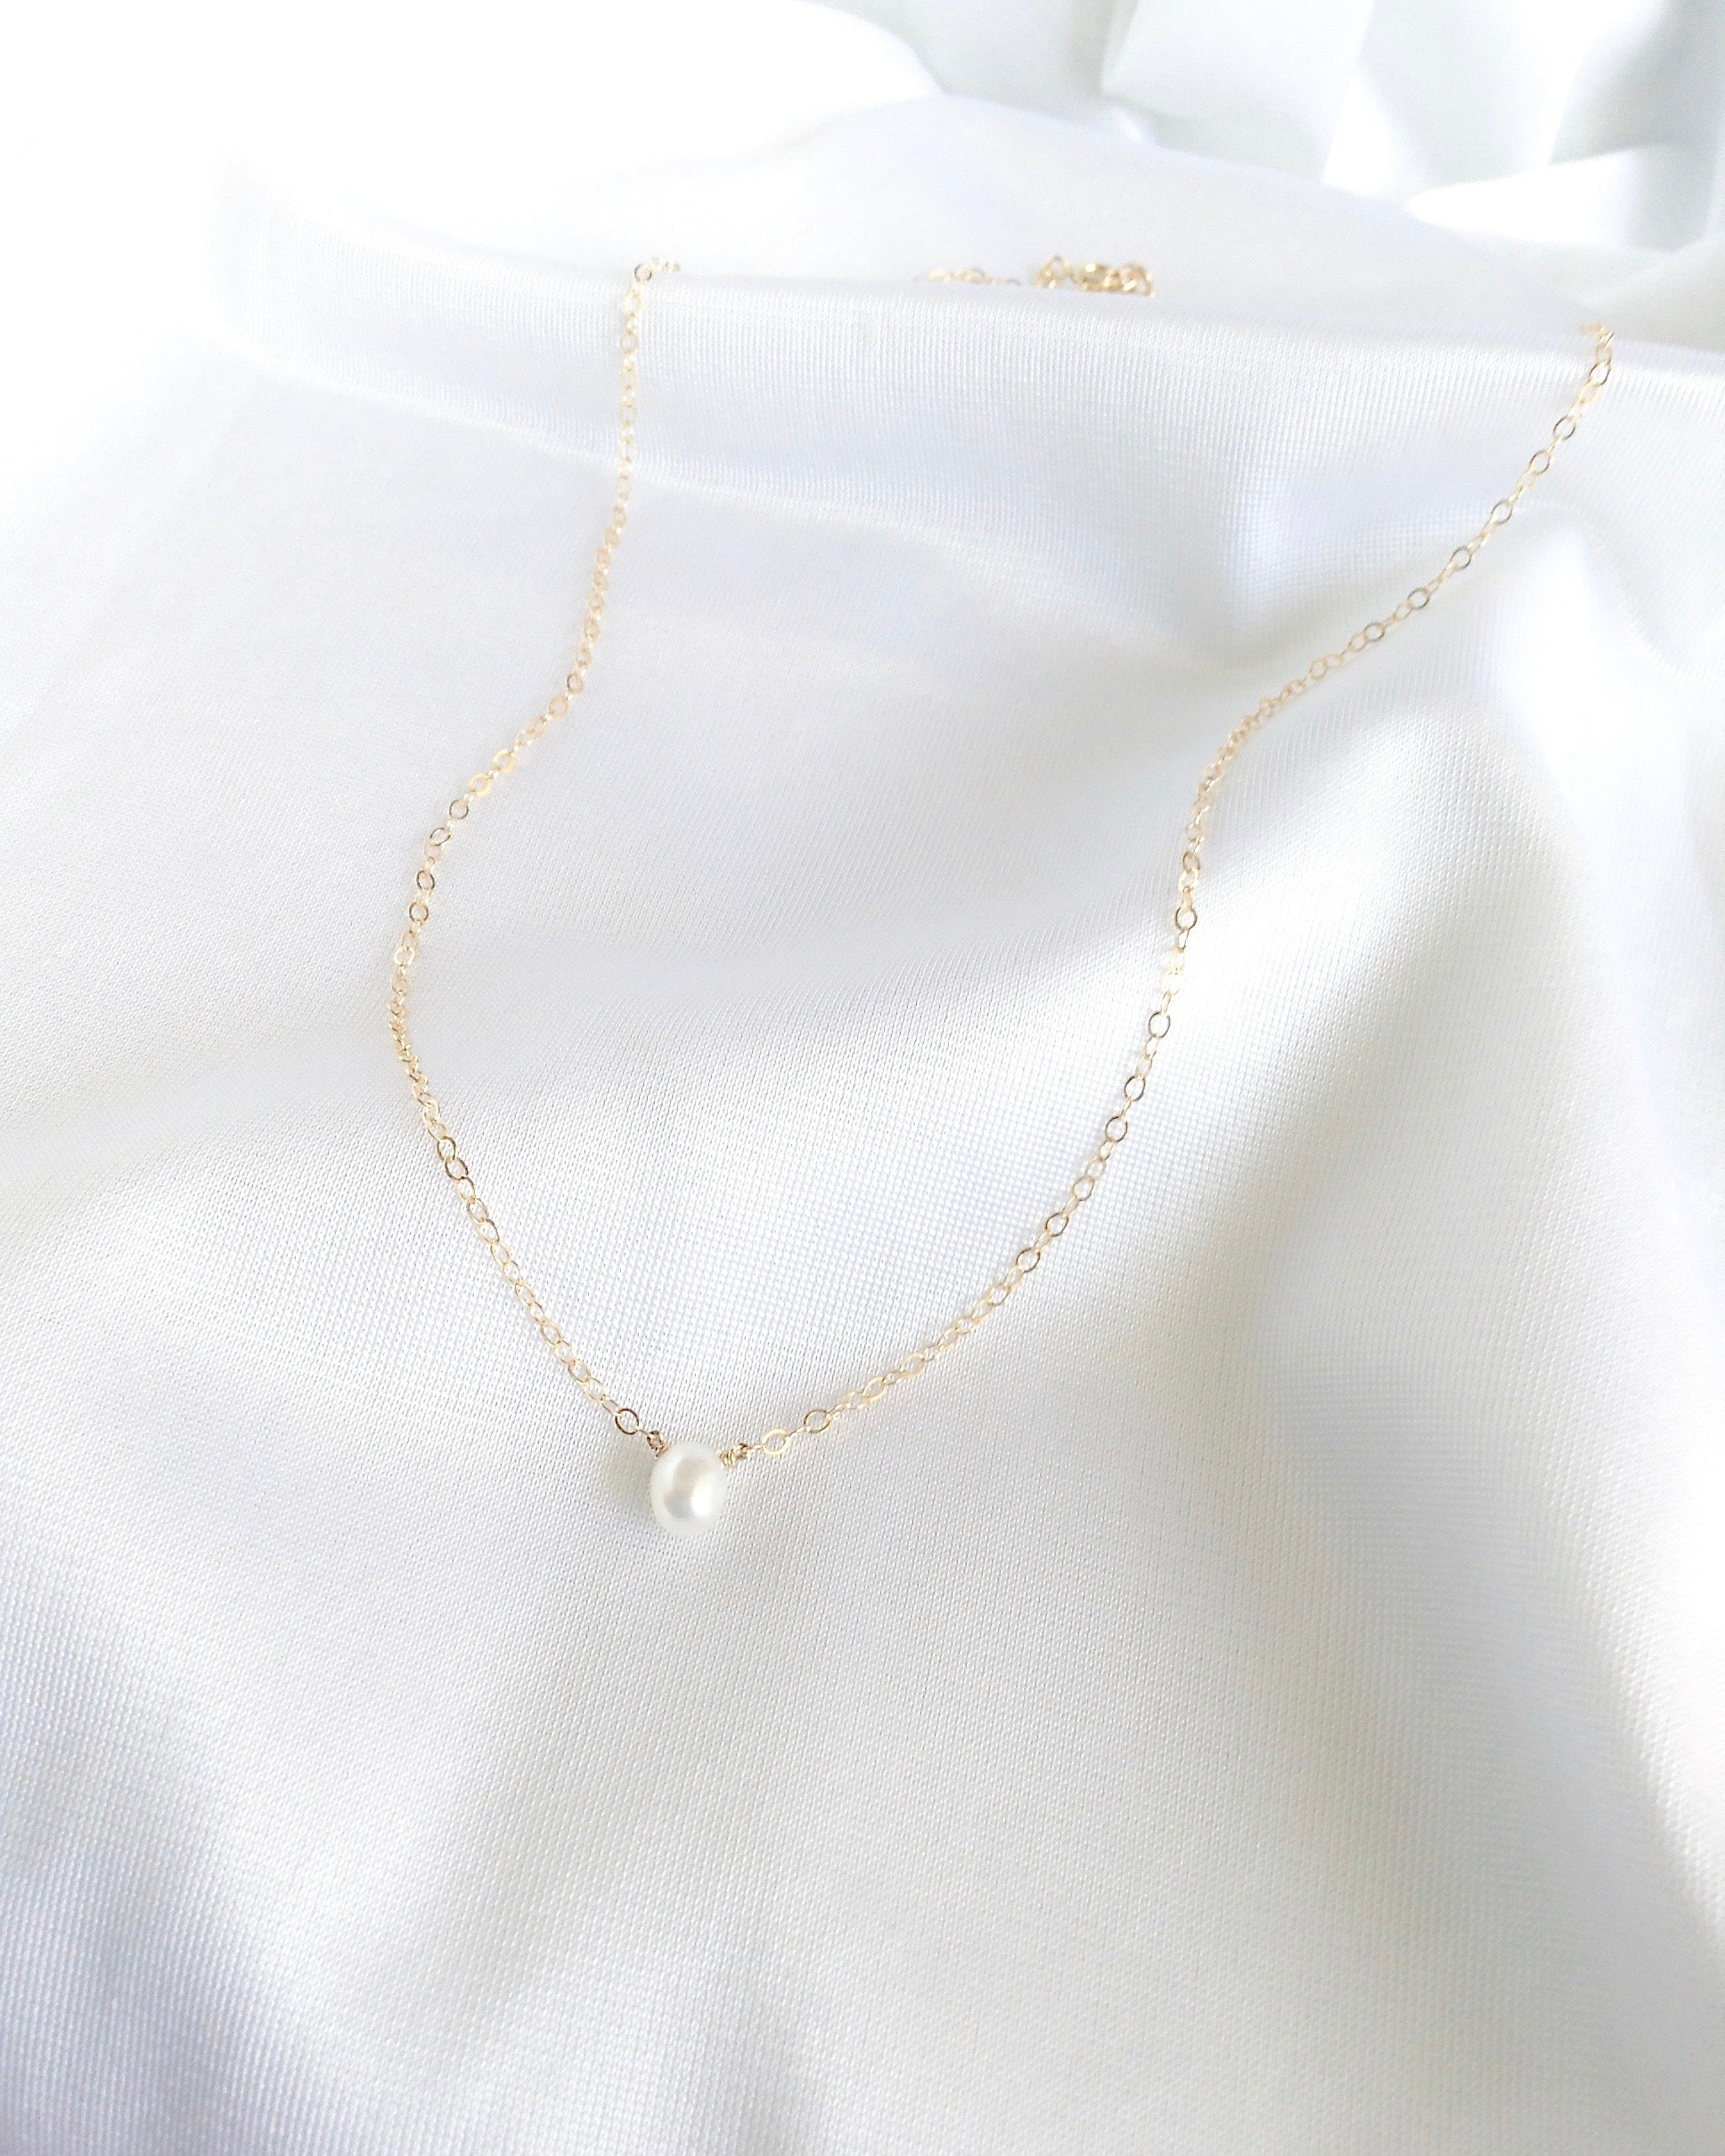 Freshwater Pearl Necklace | Simple Dainty Necklace | IB Jewelry